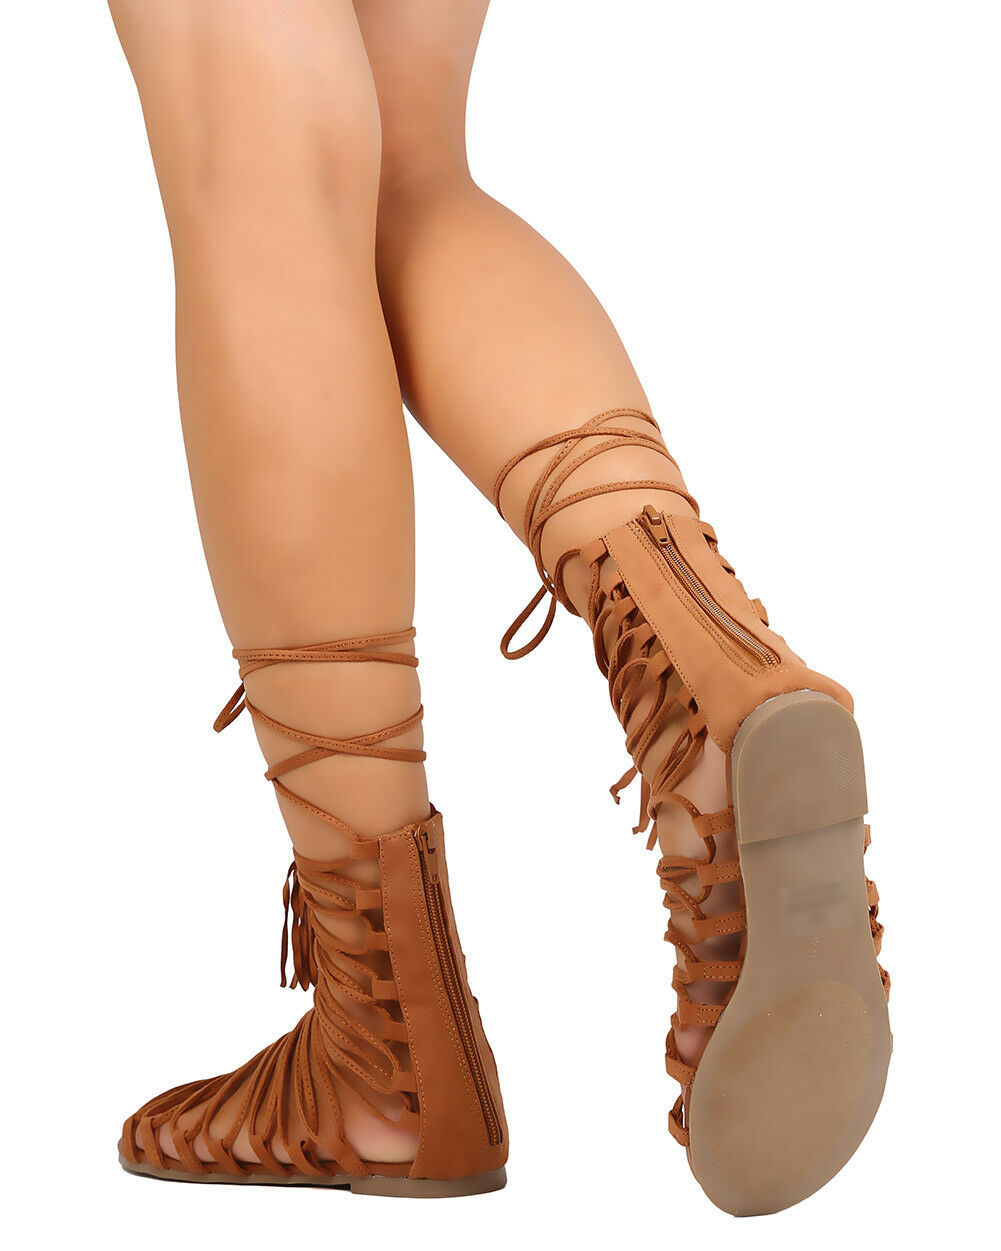 New Women Gilly Liliana Lively-12 Faux Suede Strappy Gilly Women Tie Gladiator Sandal b481a6